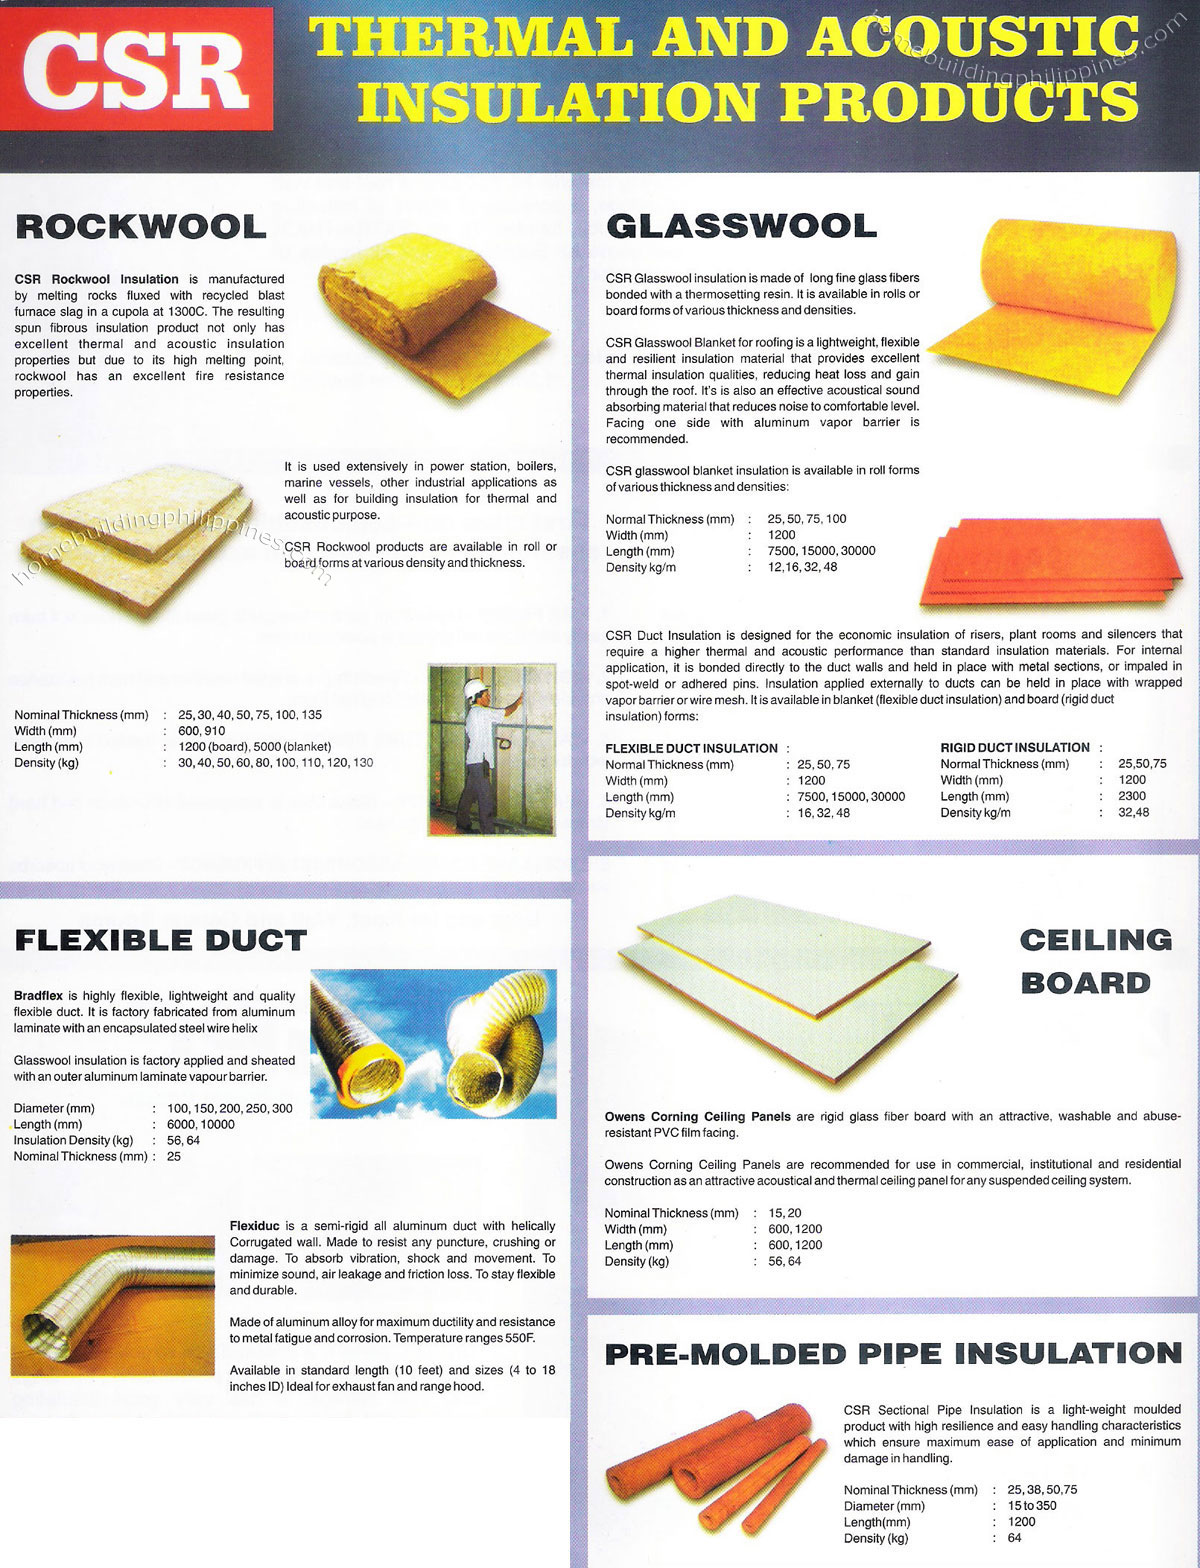 Csr thermal and acoustic insulation rockwool glasswool for Rockwool insulation board